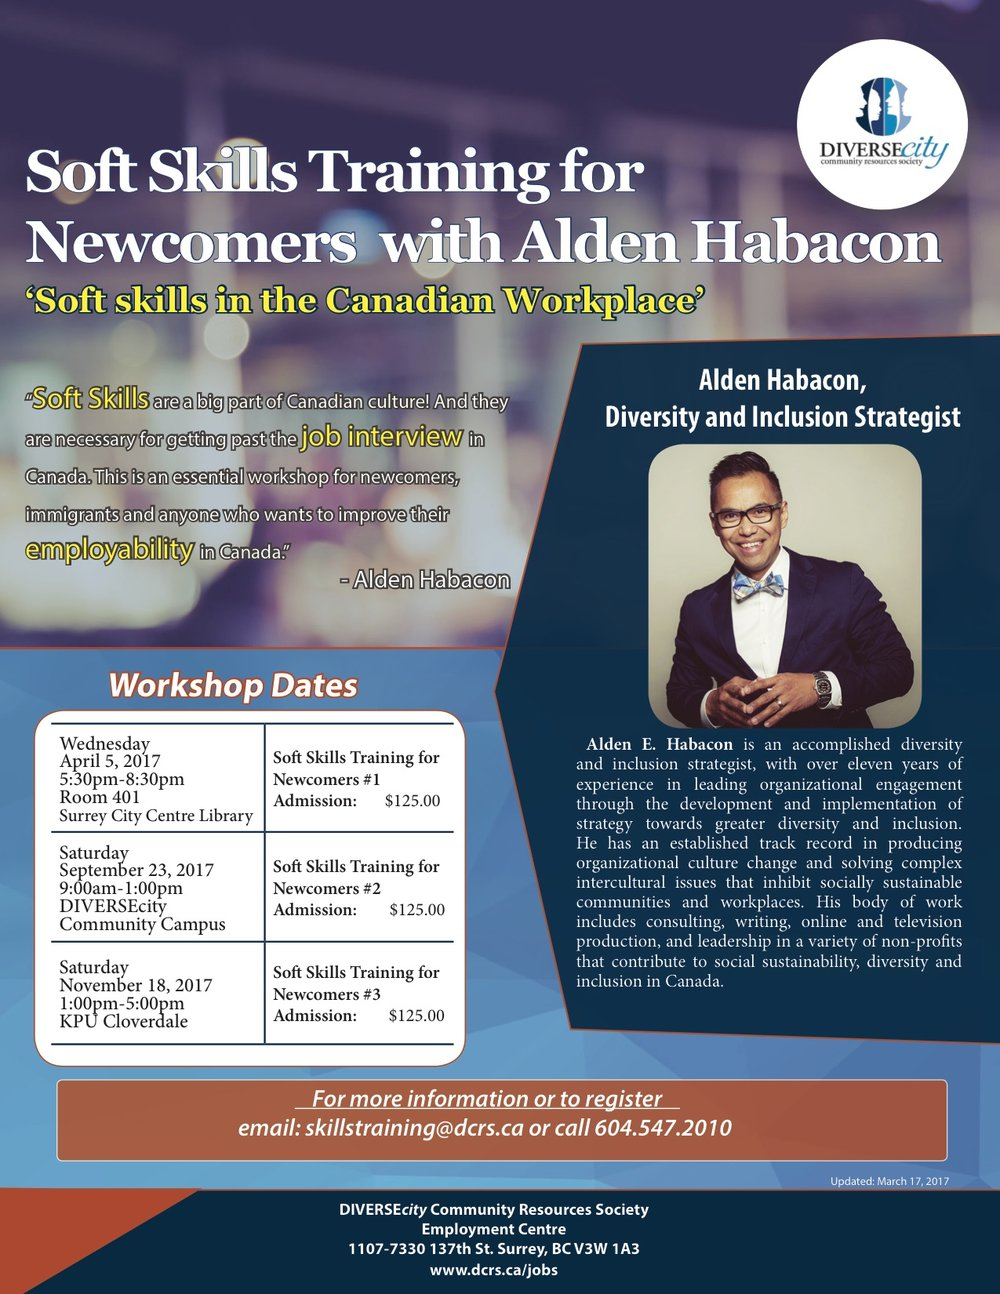 soft skills training for newcomers alden e habacon click on the above image for more information